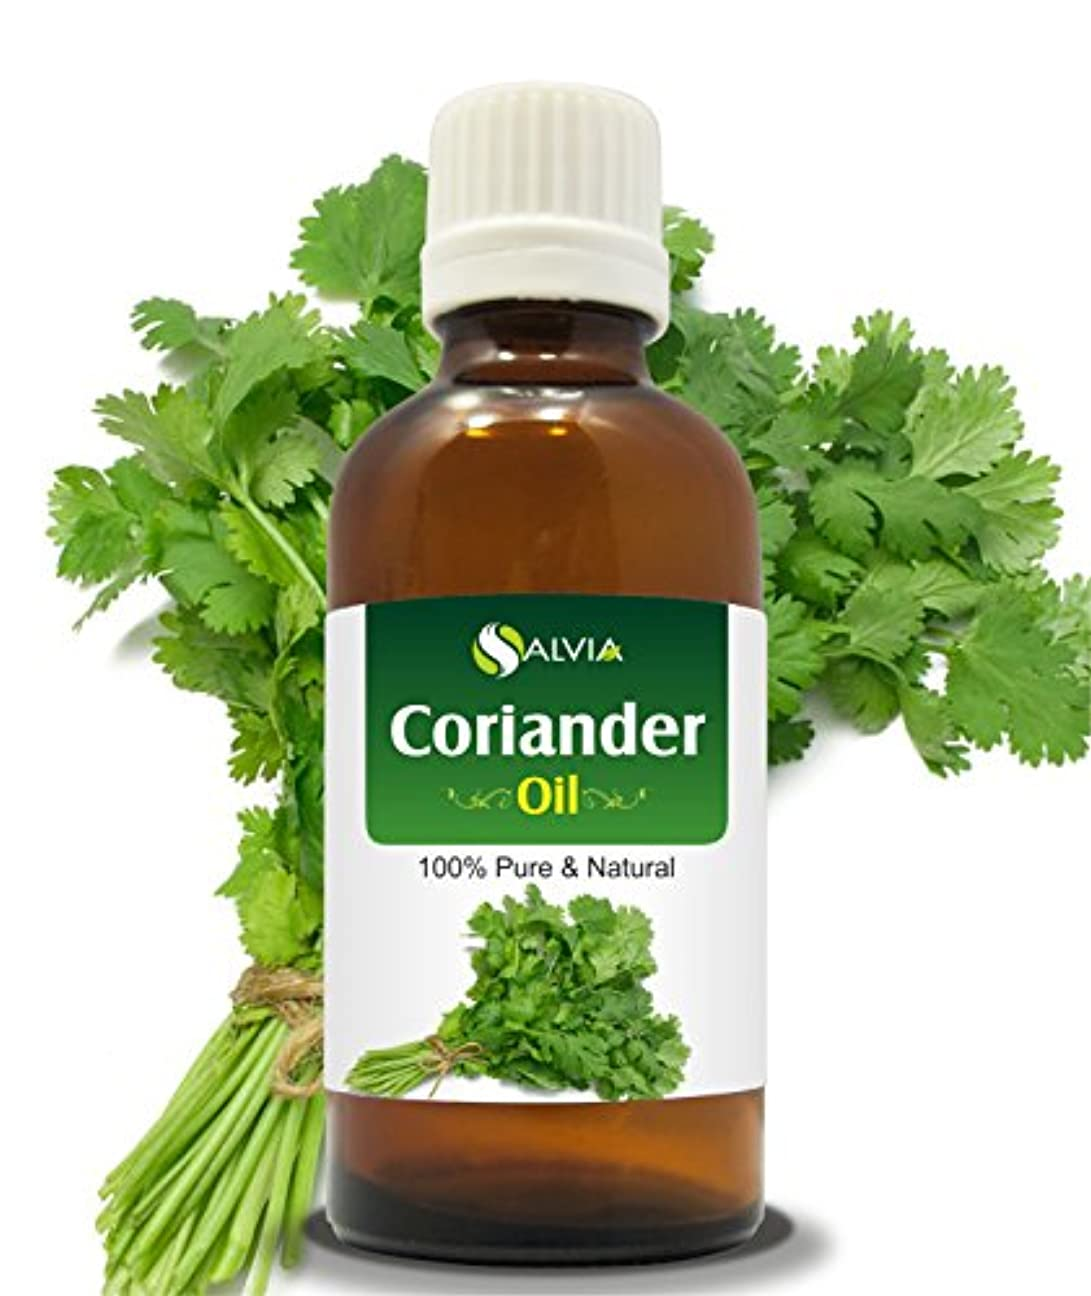 ヘッジ復讐敵対的CORIANDER OIL 100% NATURAL PURE UNDILUTED UNCUT ESSENTIAL OIL 30ML